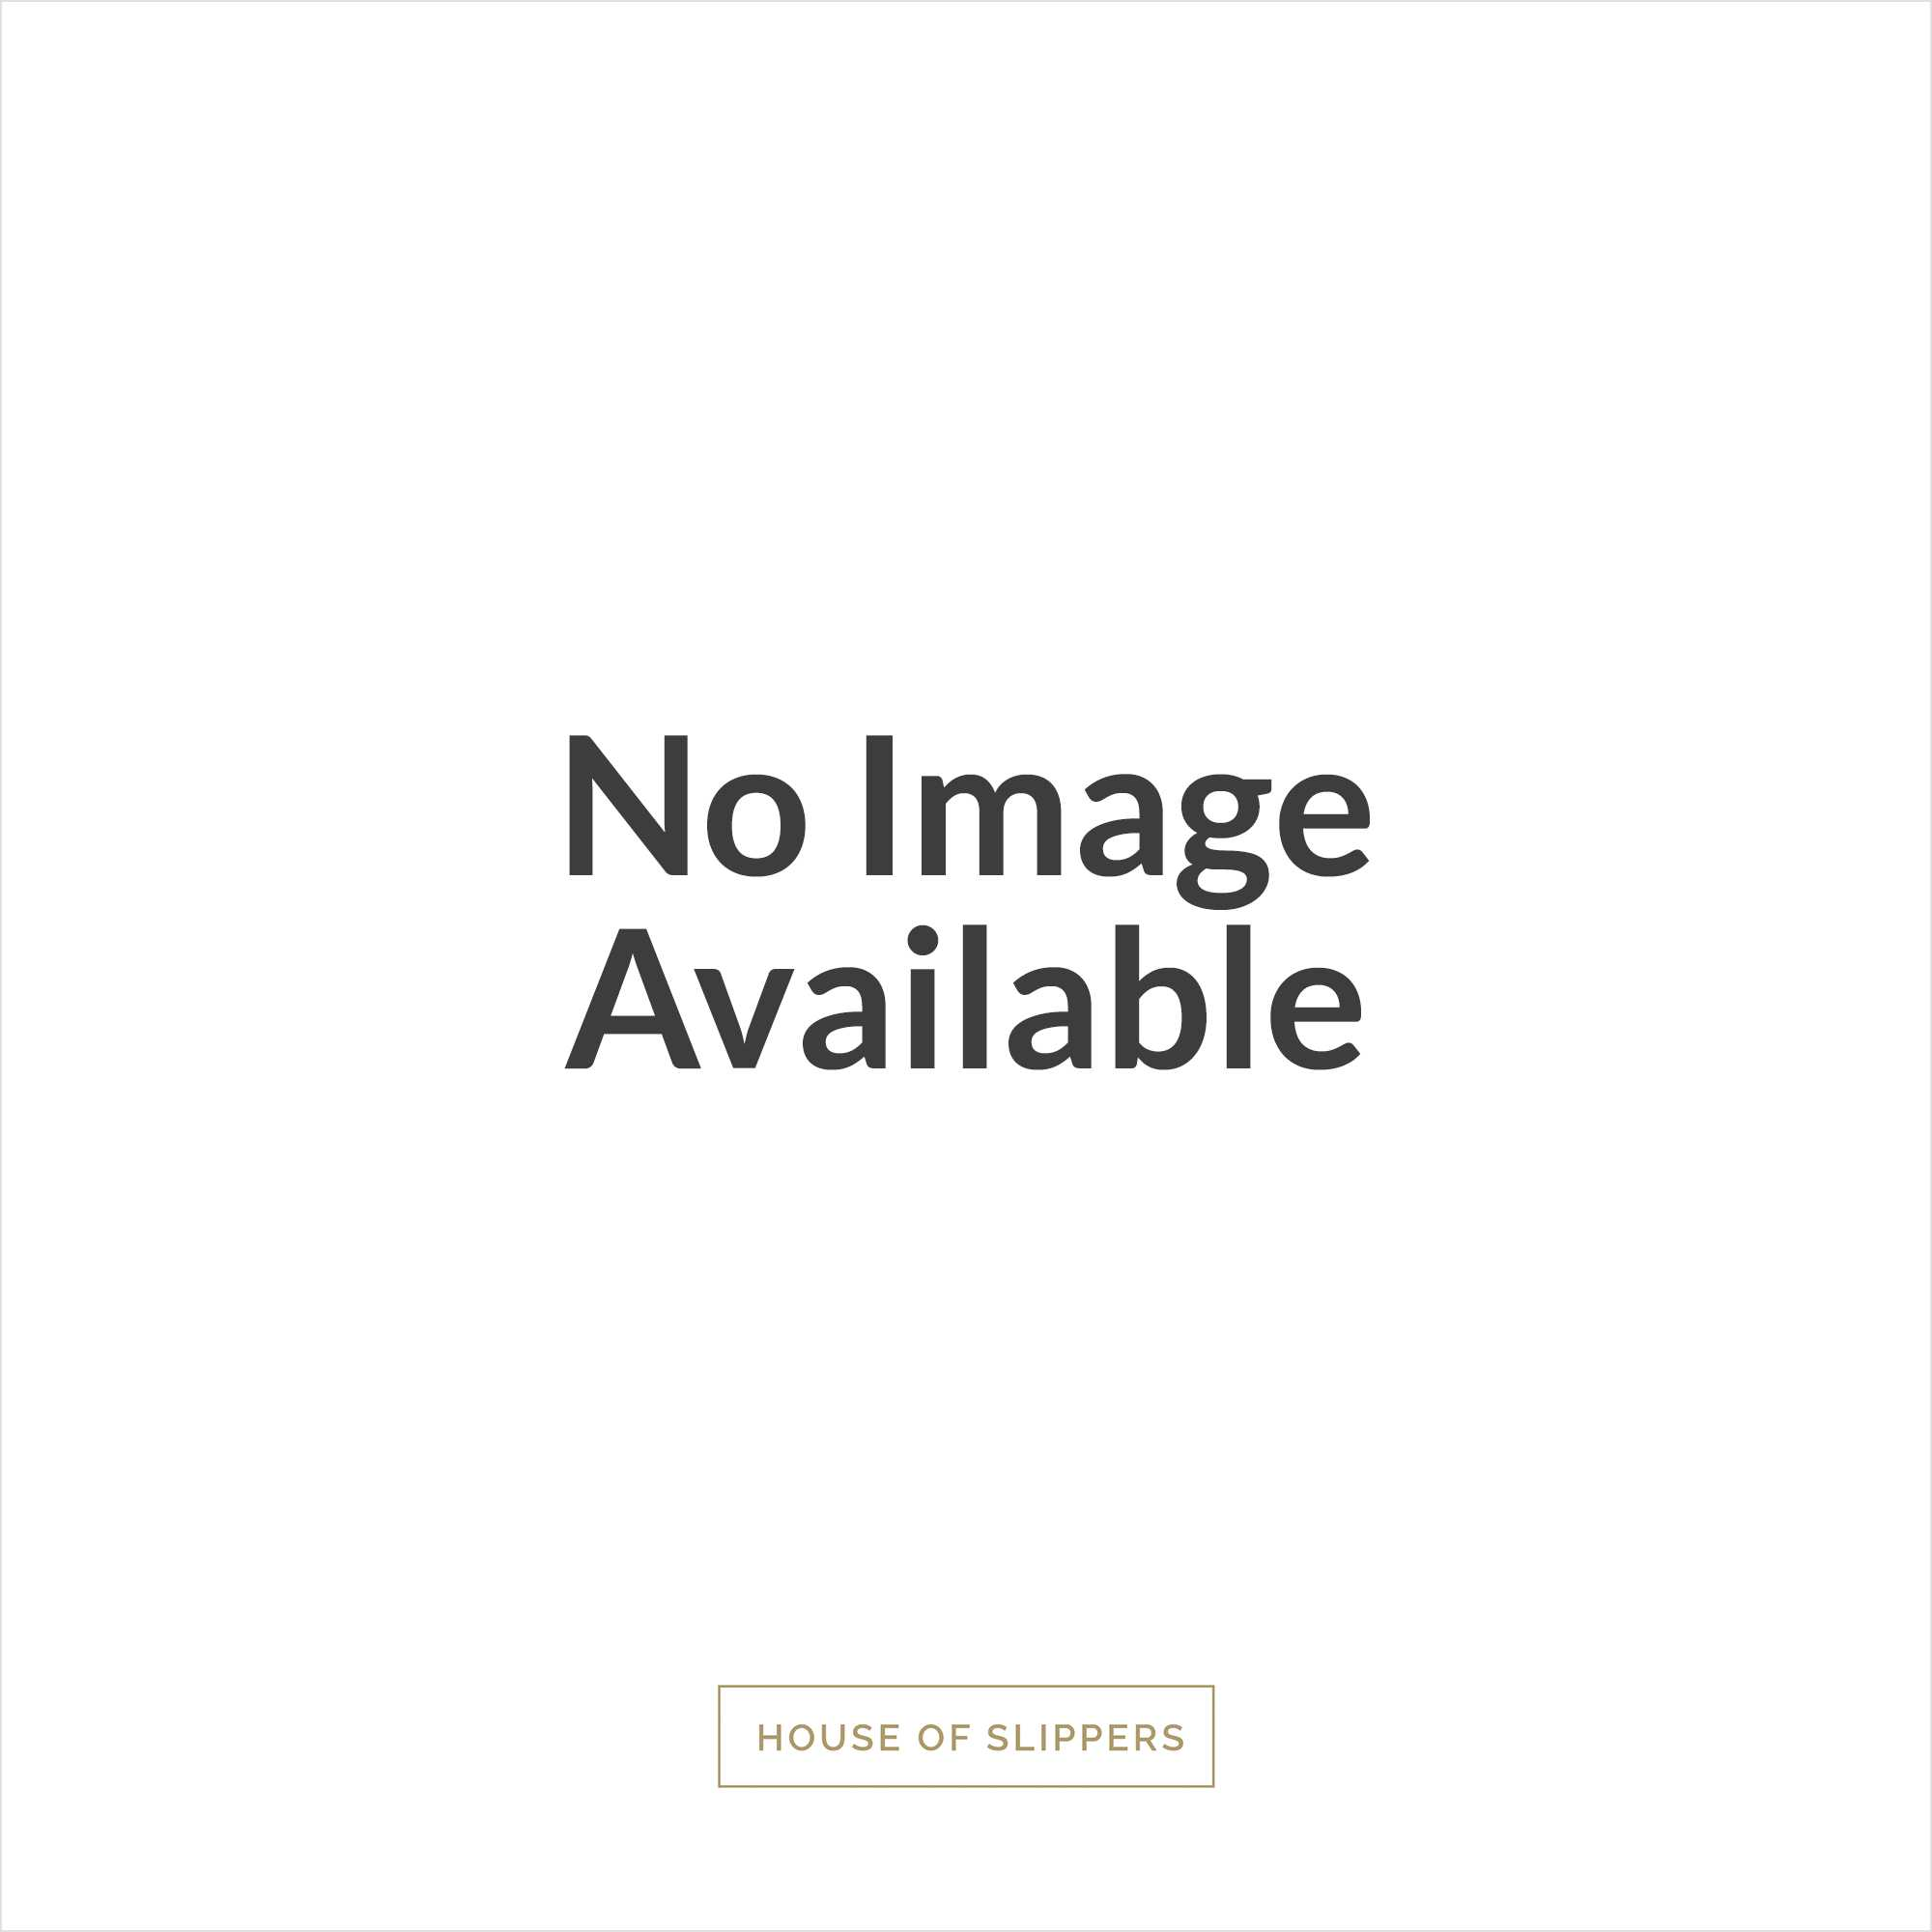 cd148f516fc33 Shop Ladies Full Slippers At House Of Slippers